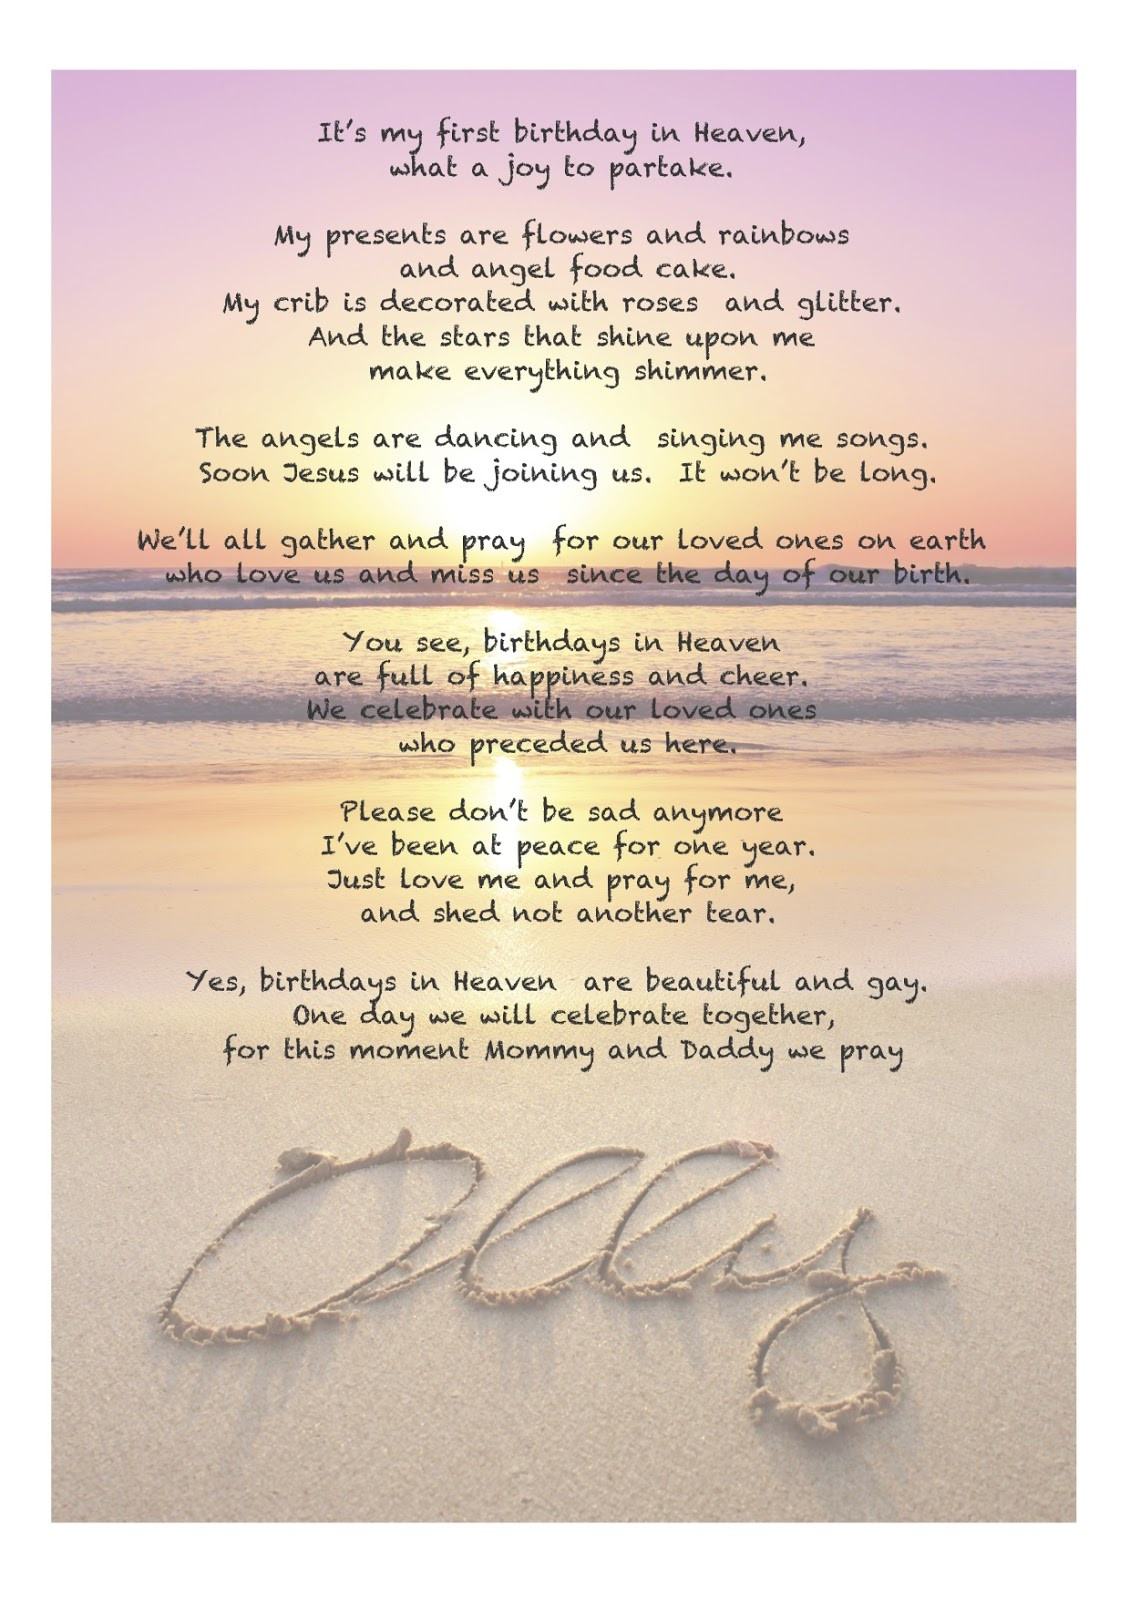 Birthday In Heaven Wishes  Birthday In Heaven Poems Quotes QuotesGram